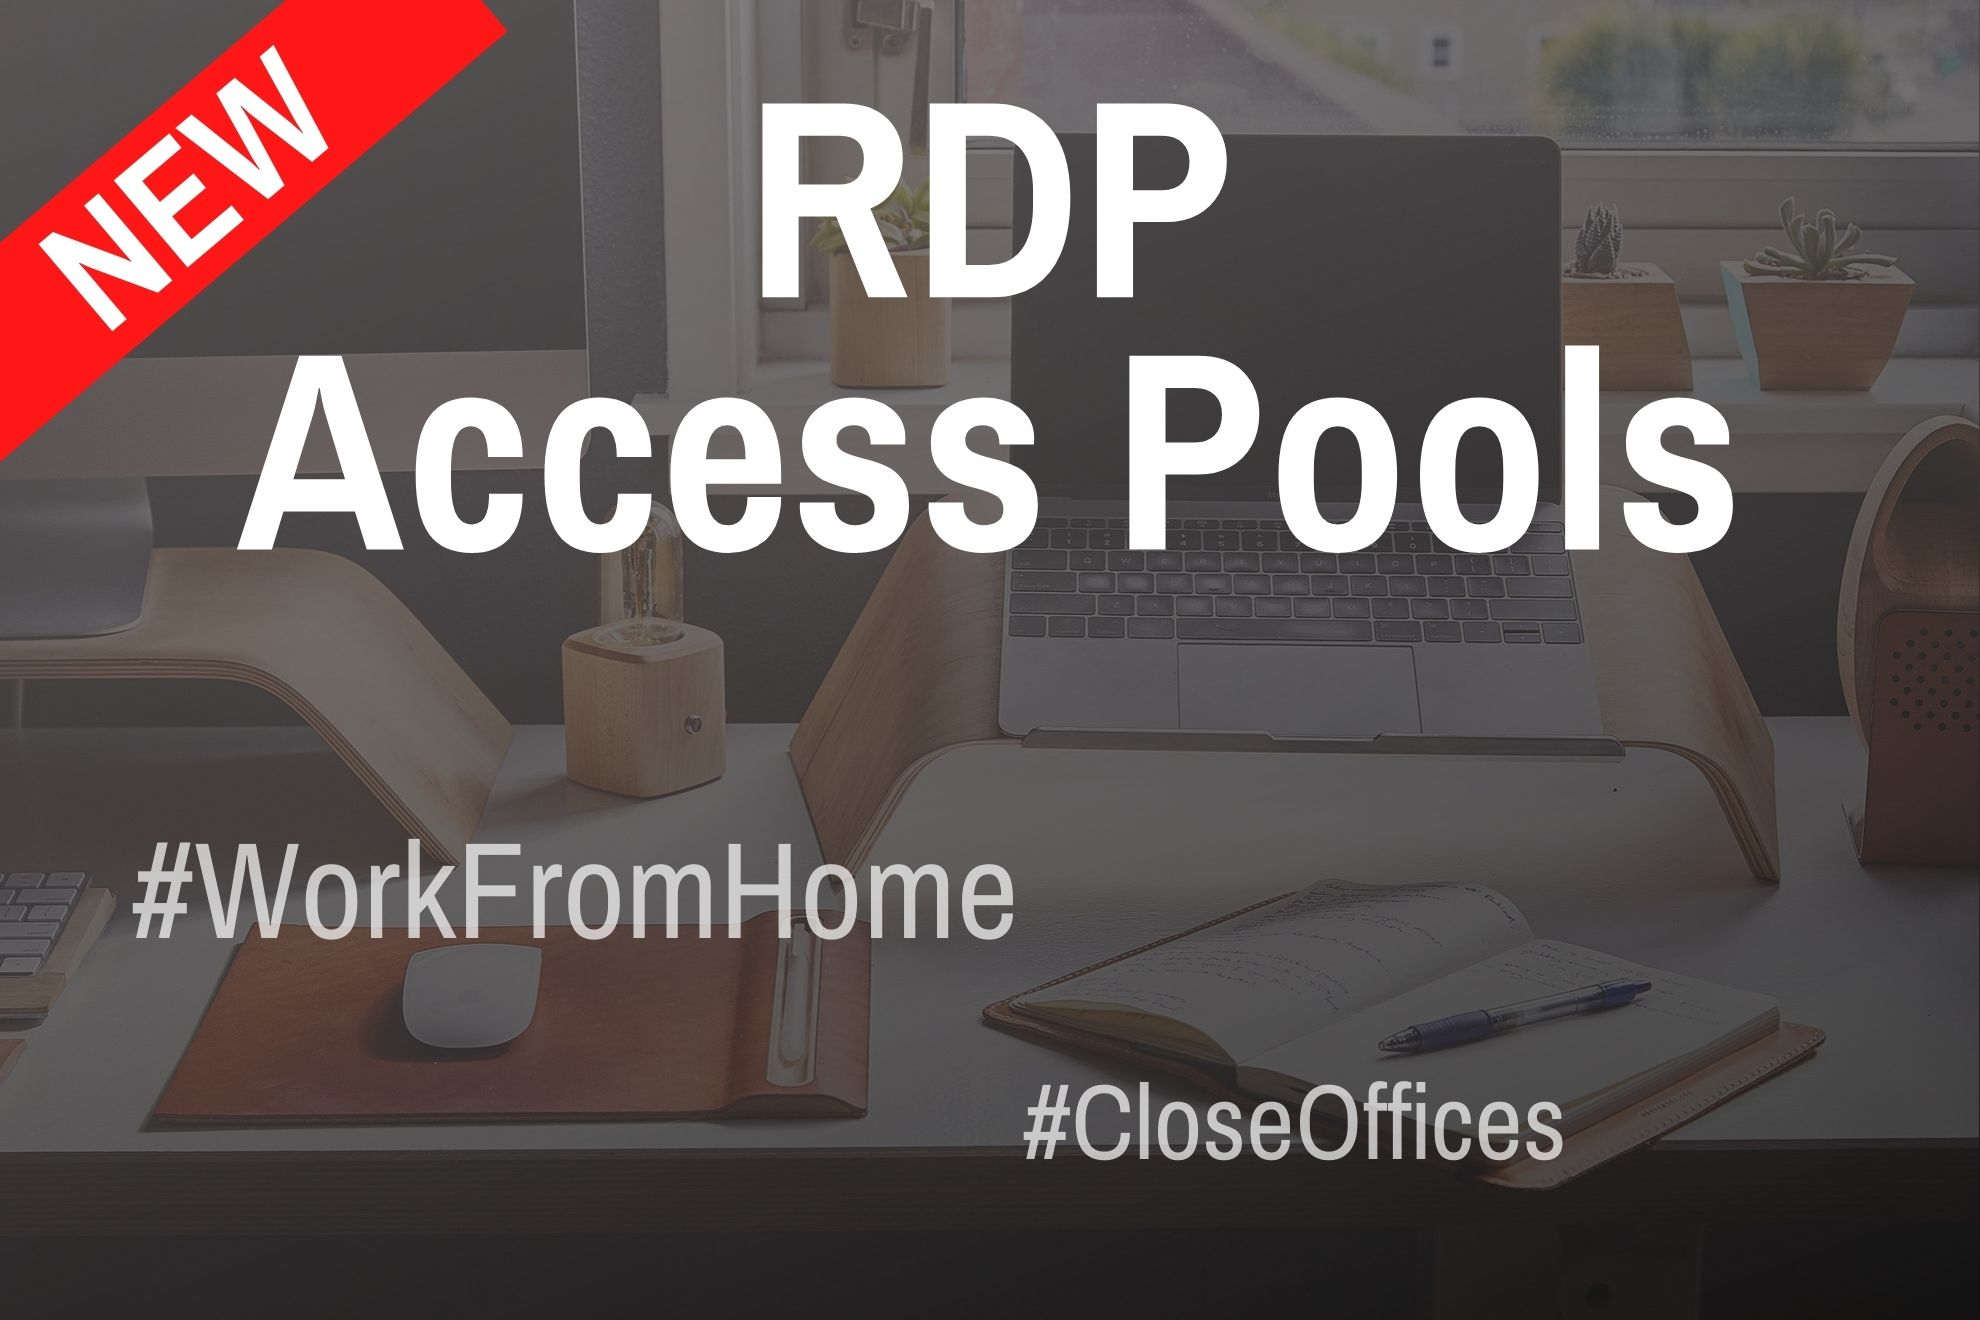 deskMate RDP Access Pools